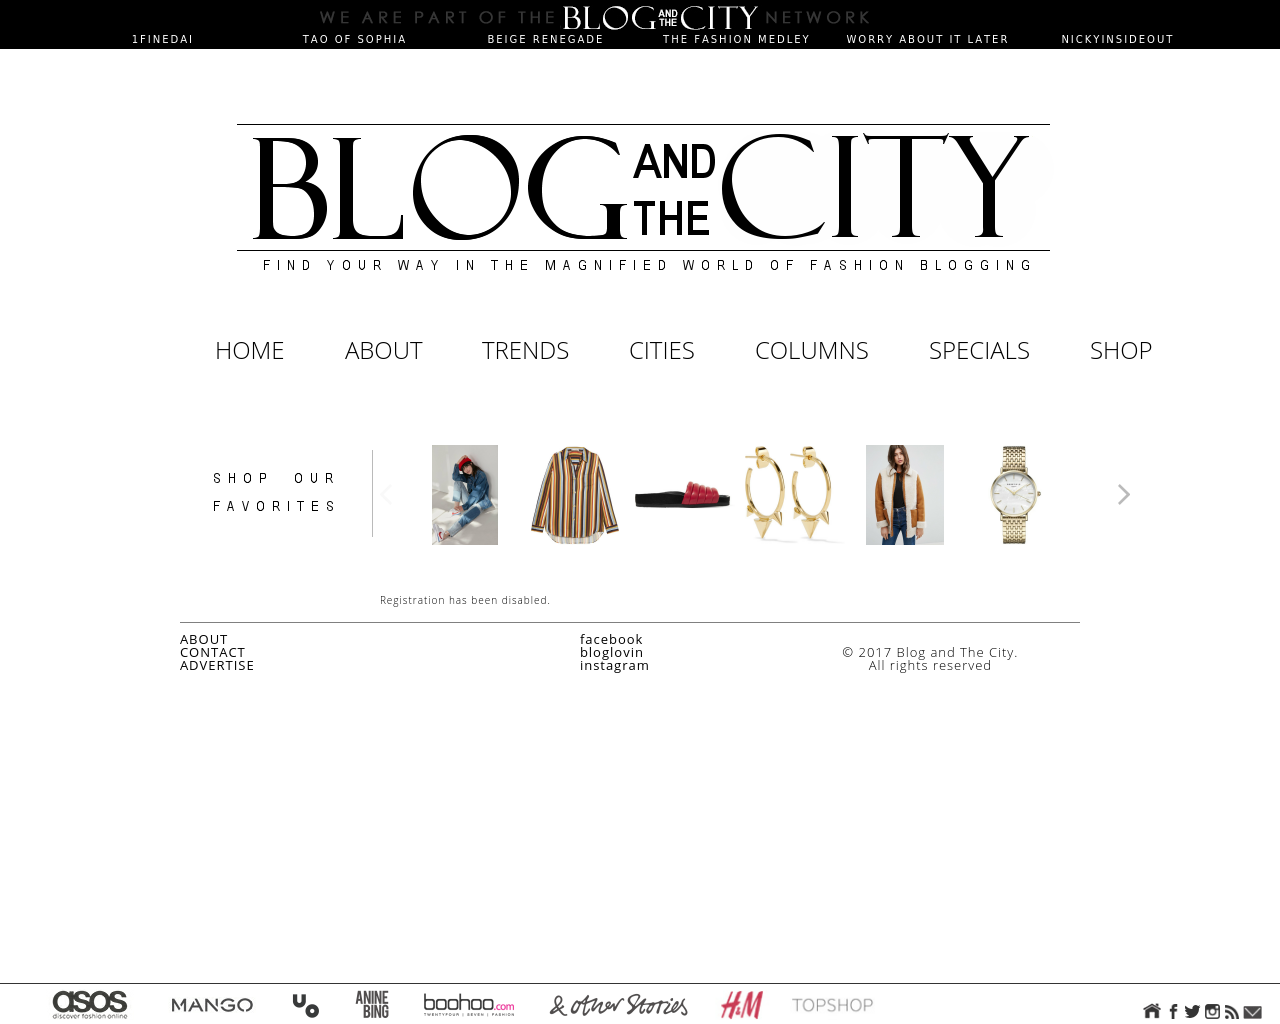 Blog-and-The-City-Advertising-Reviews-Pricing